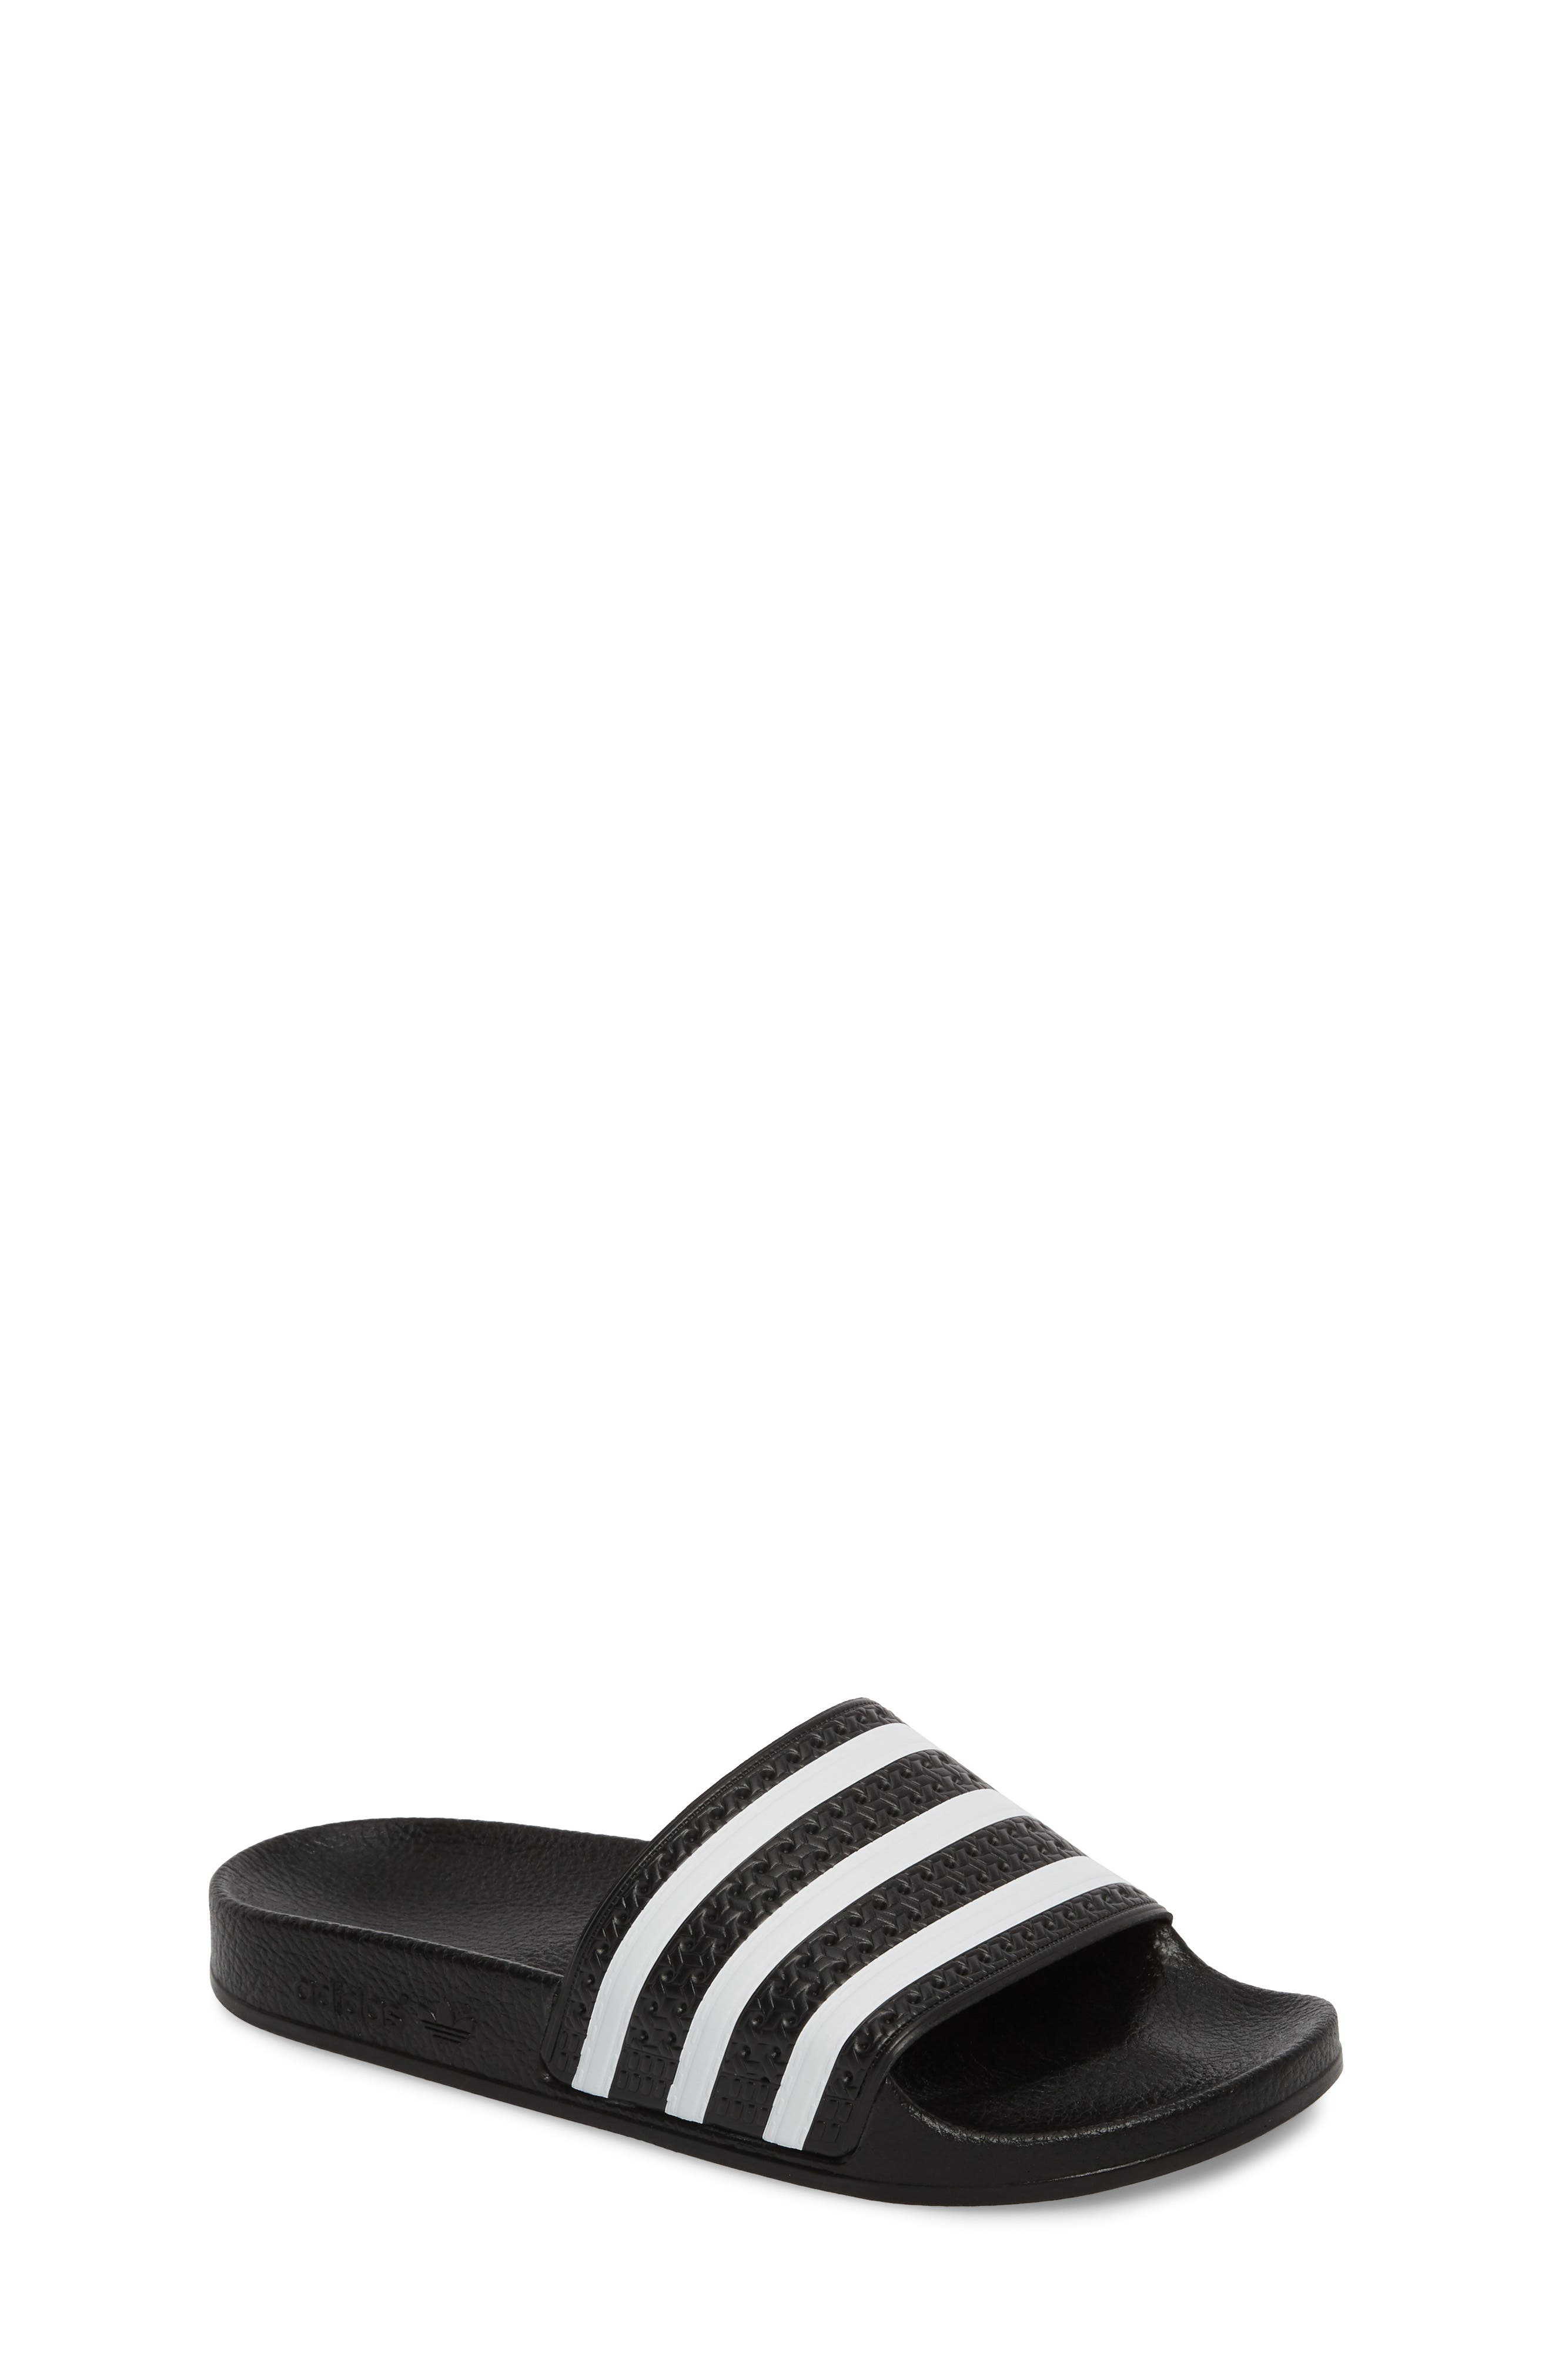 Adilette Sandal,                             Main thumbnail 1, color,                             BLACK